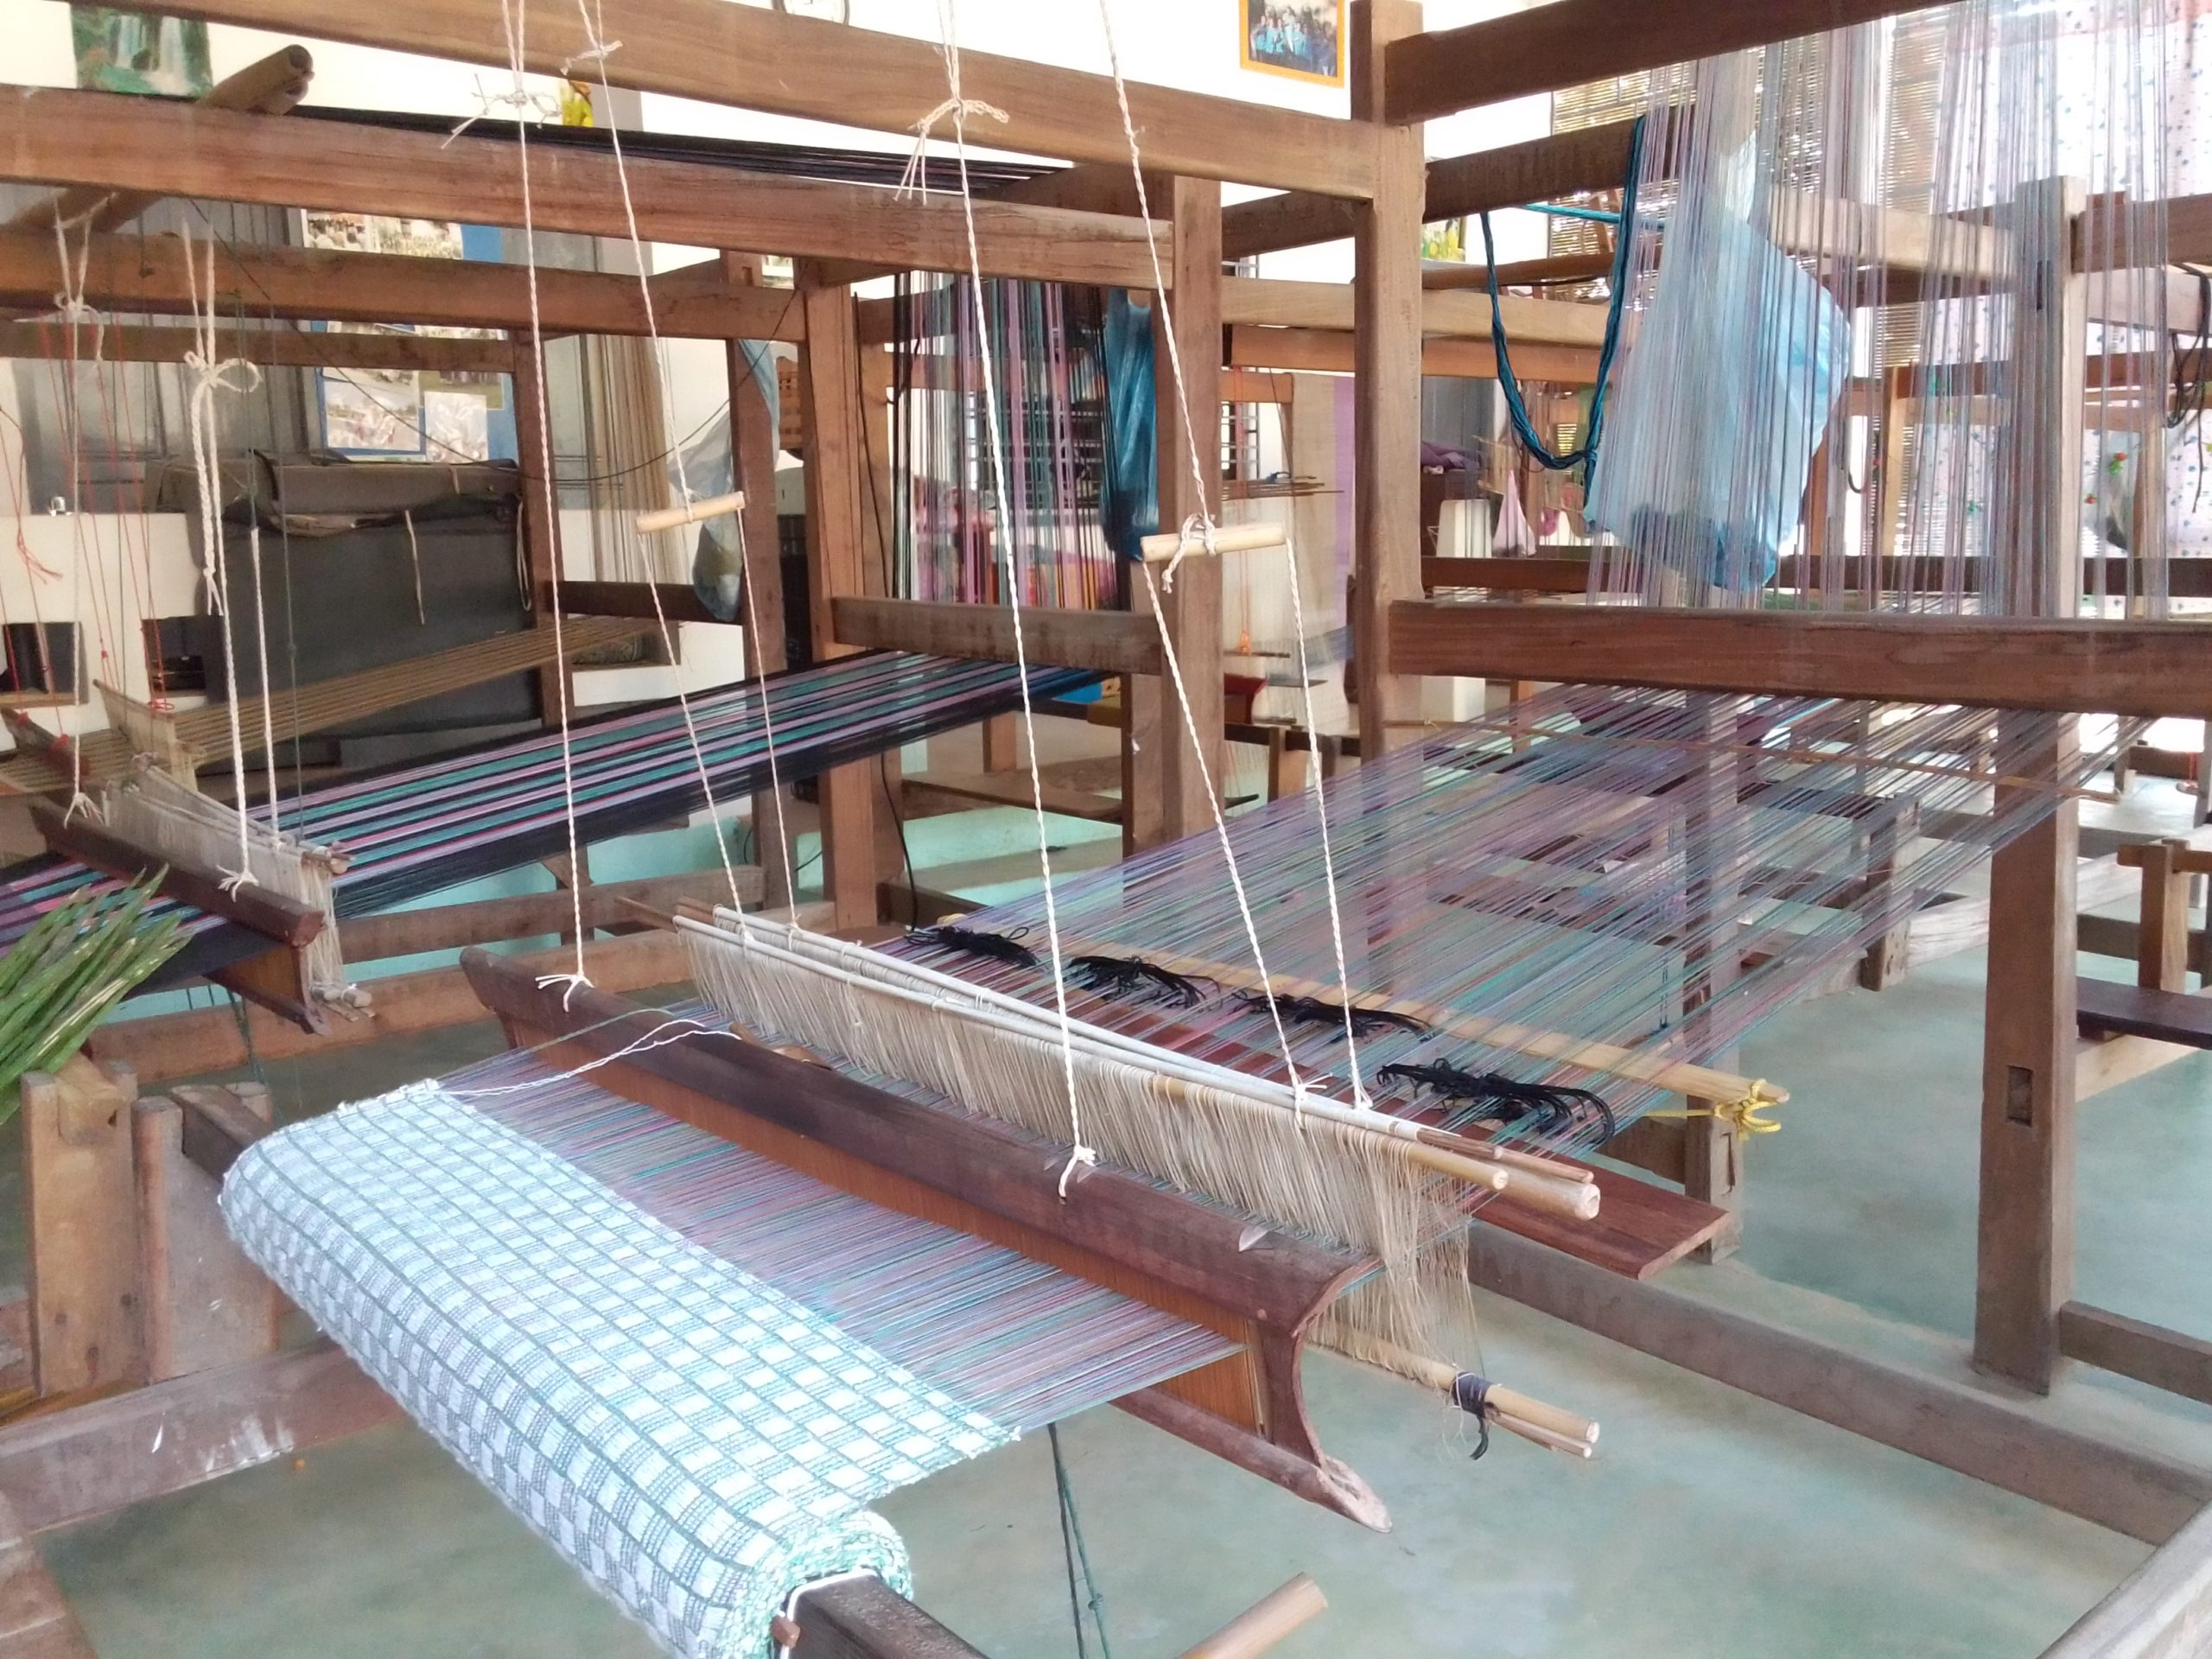 Floor looms with projects, at rest, Luang Prabang Deaf & Mute Community Training Centre